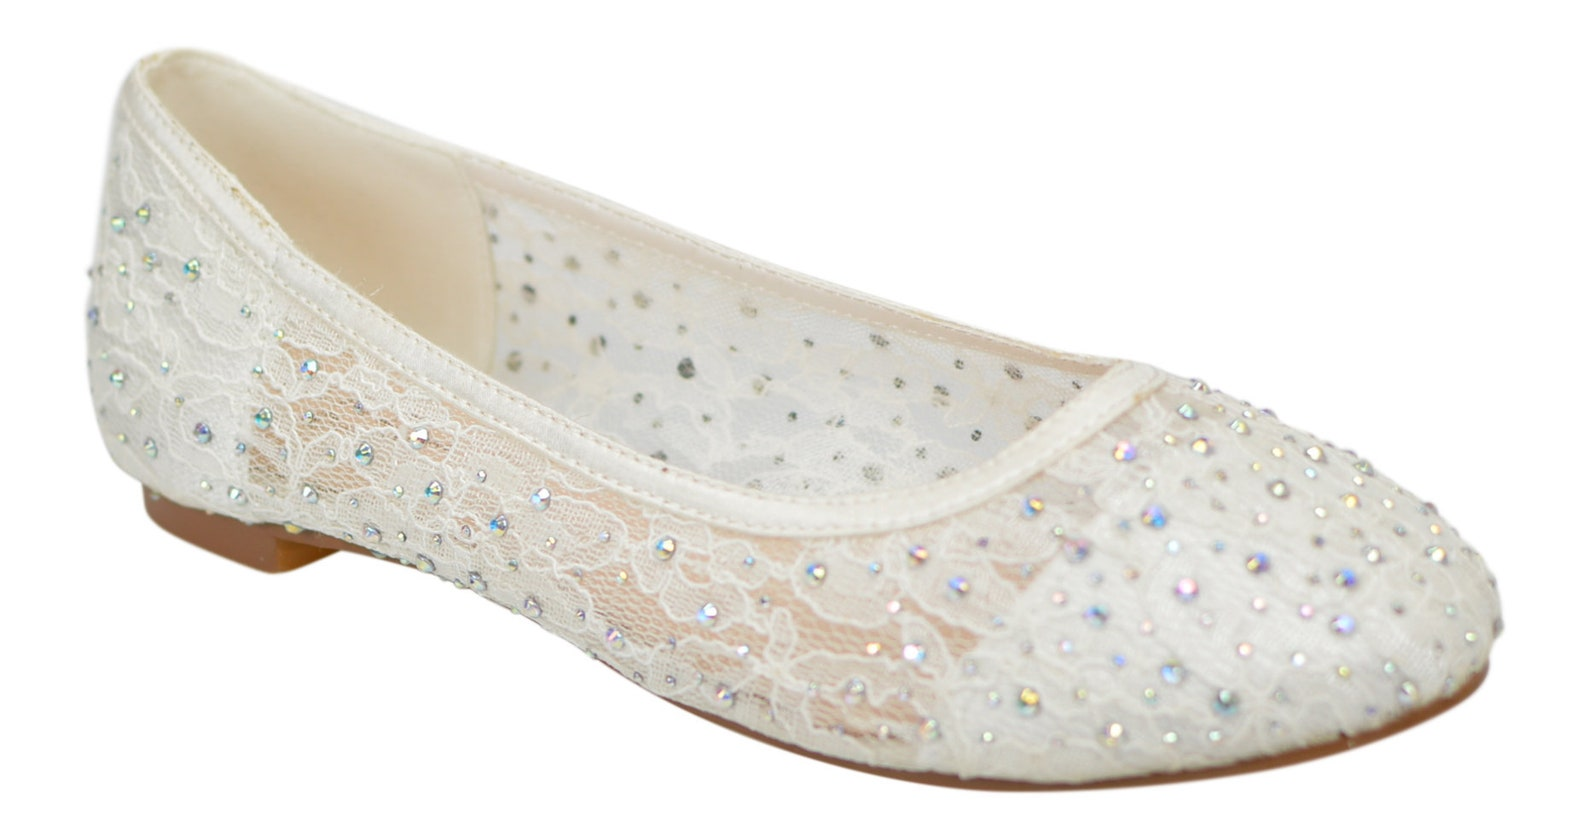 women's ivory lace with gem detail ballerina flat wedding bridal ballet shoes